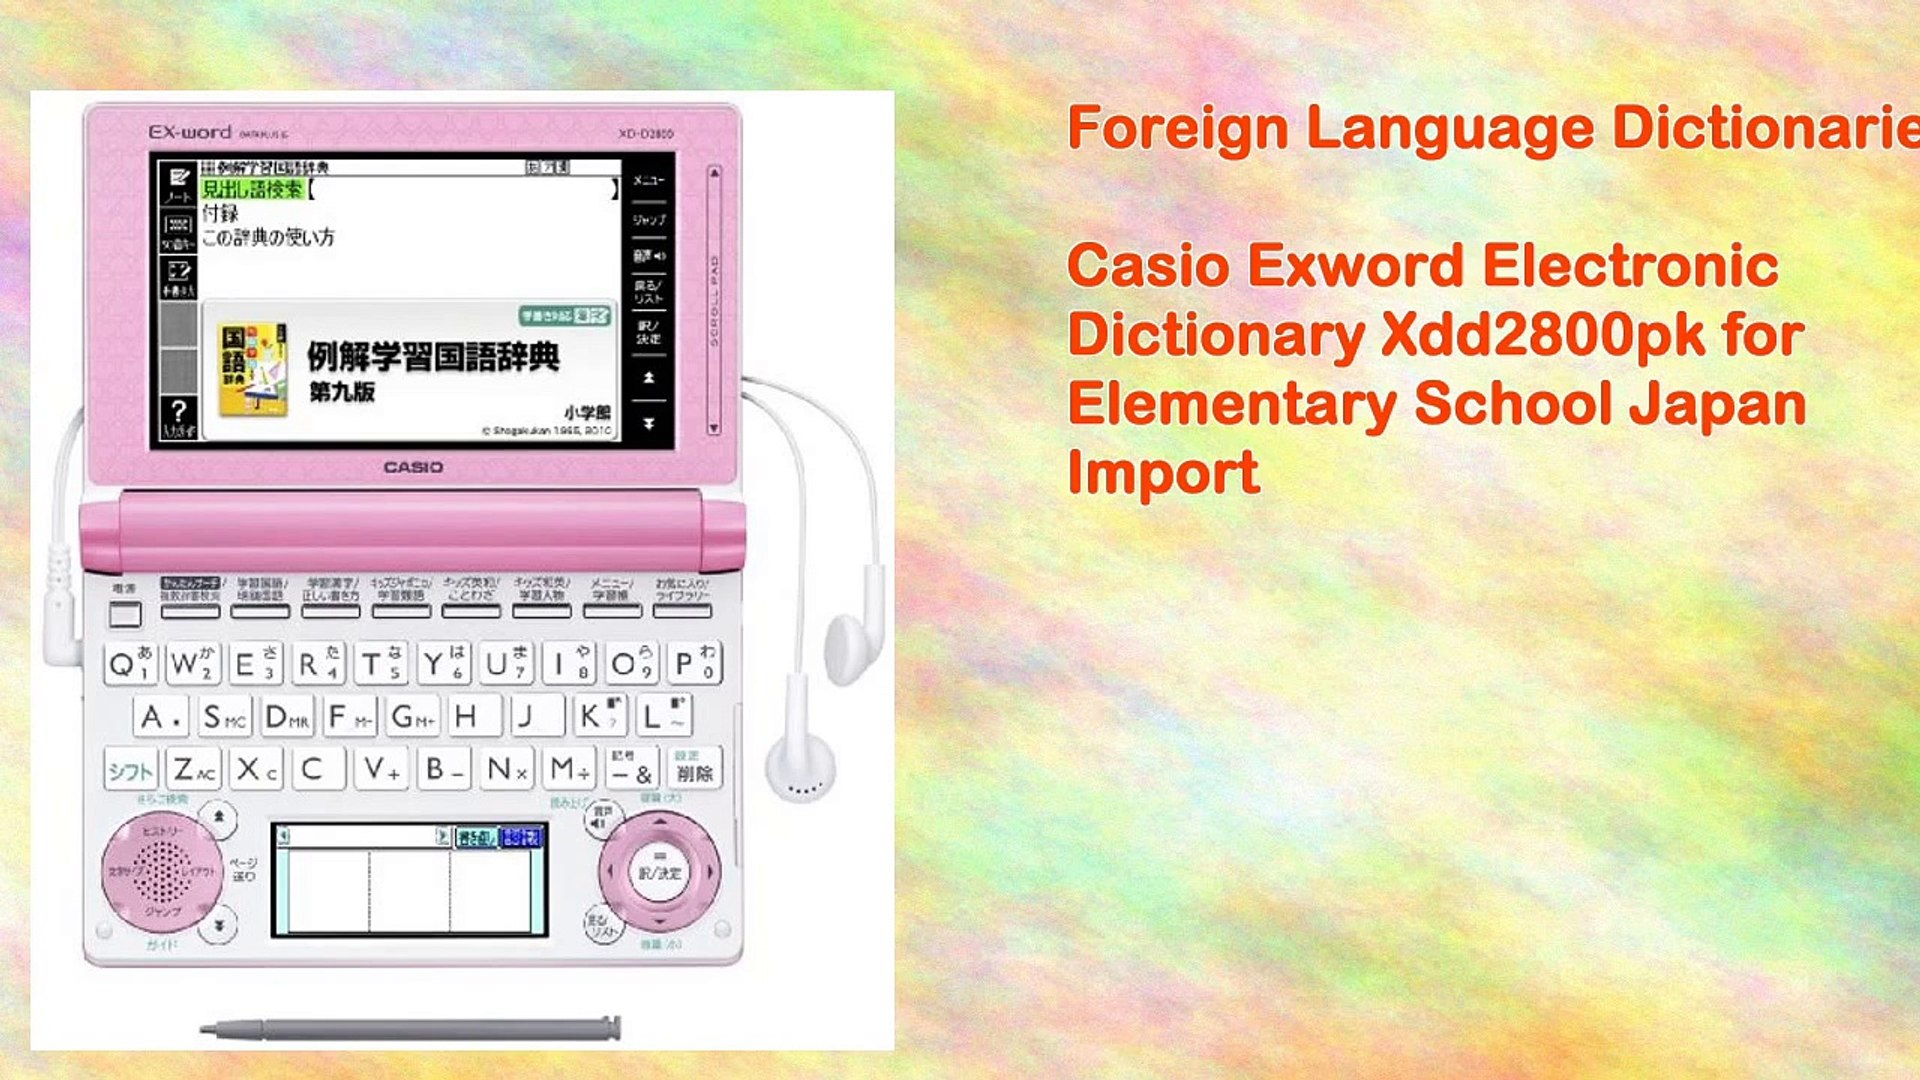 Casio Exword Electronic Dictionary Xdd2800pk for Elementary School Japan  Import